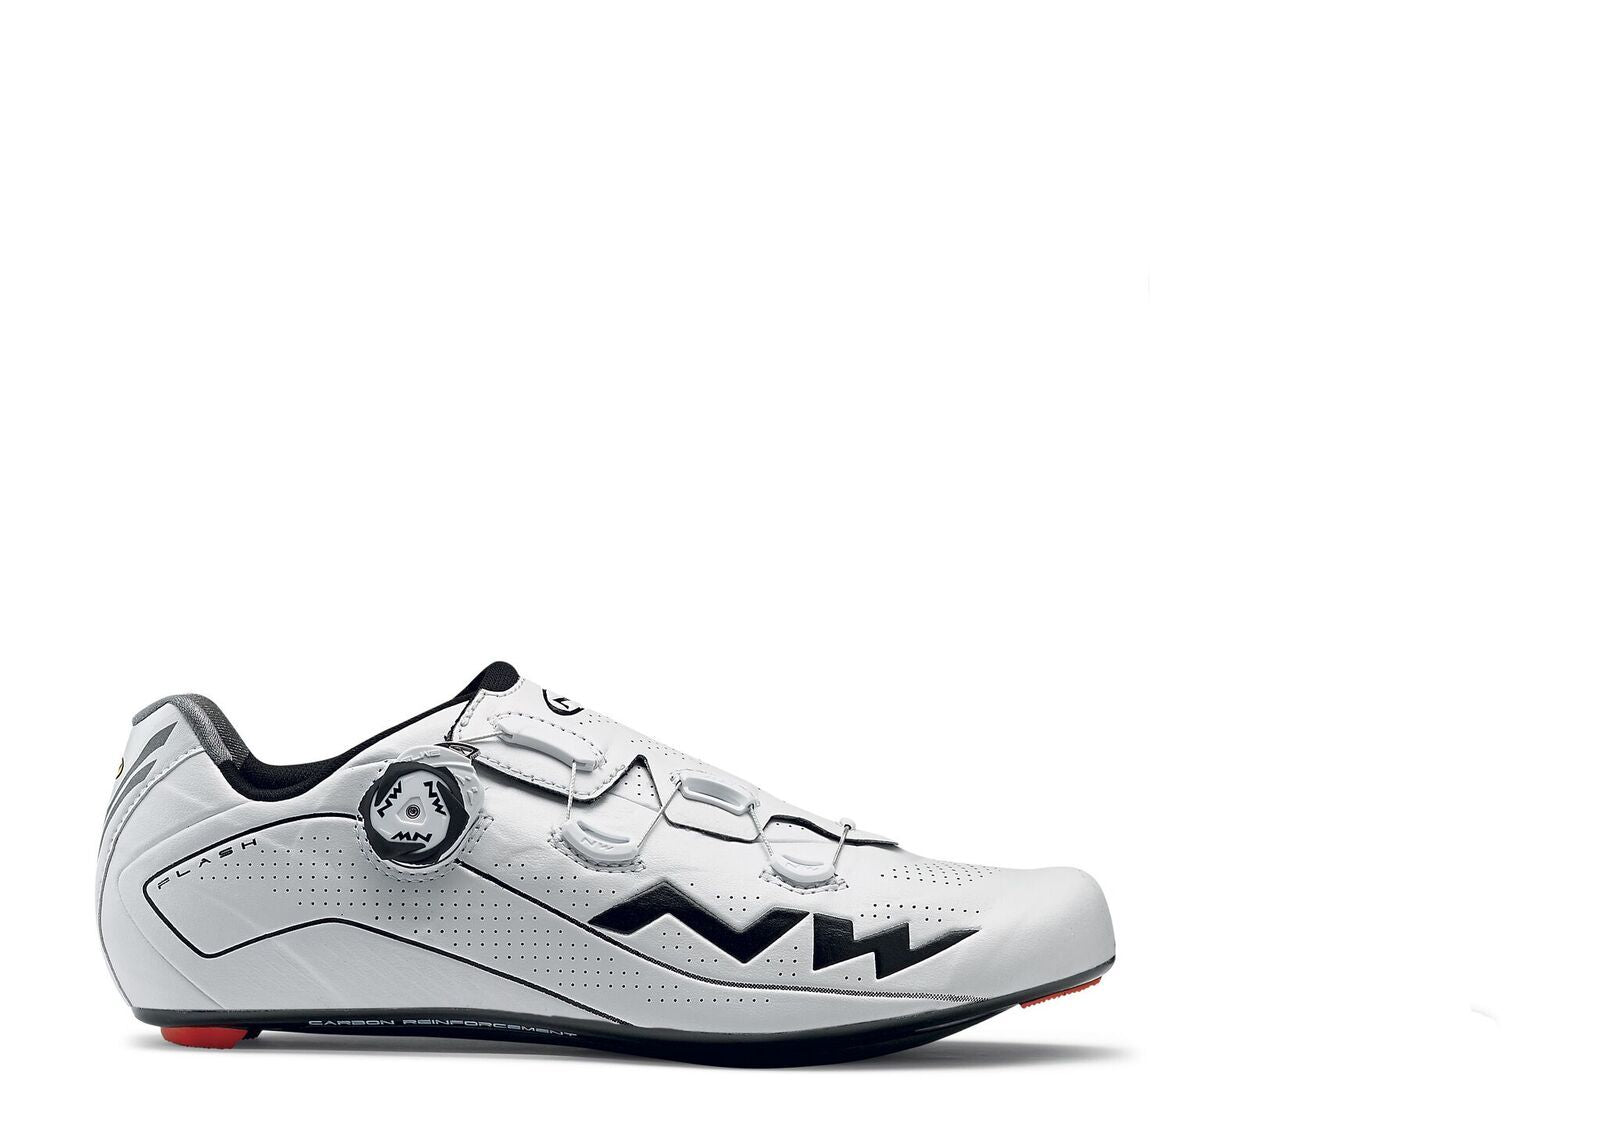 Northwave Flash Shoes-White/Black - Cyclop.in